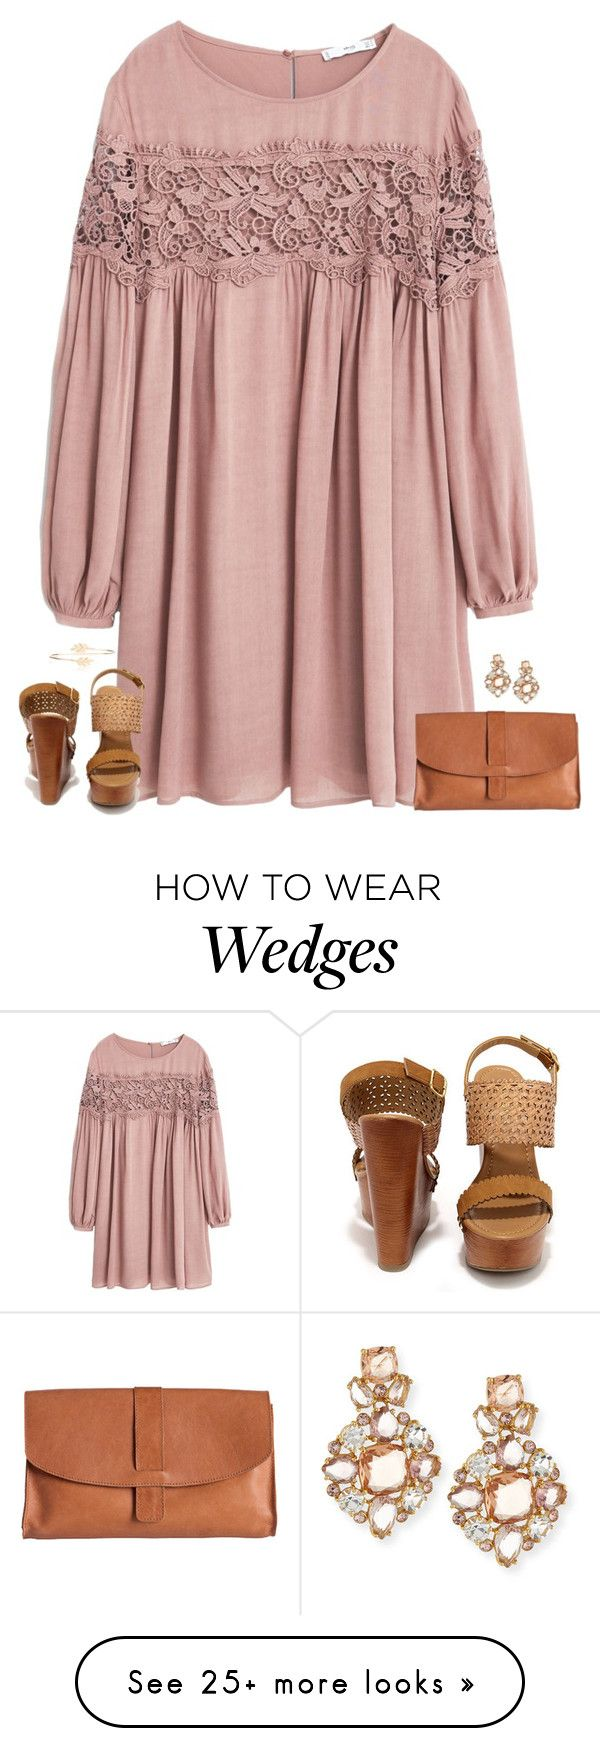 """""""when I hear your voice I'll be fine."""" by kaley-ii on Polyvore featuring MANGO, Soda, Pieces, Kate Spade and Accessorize"""